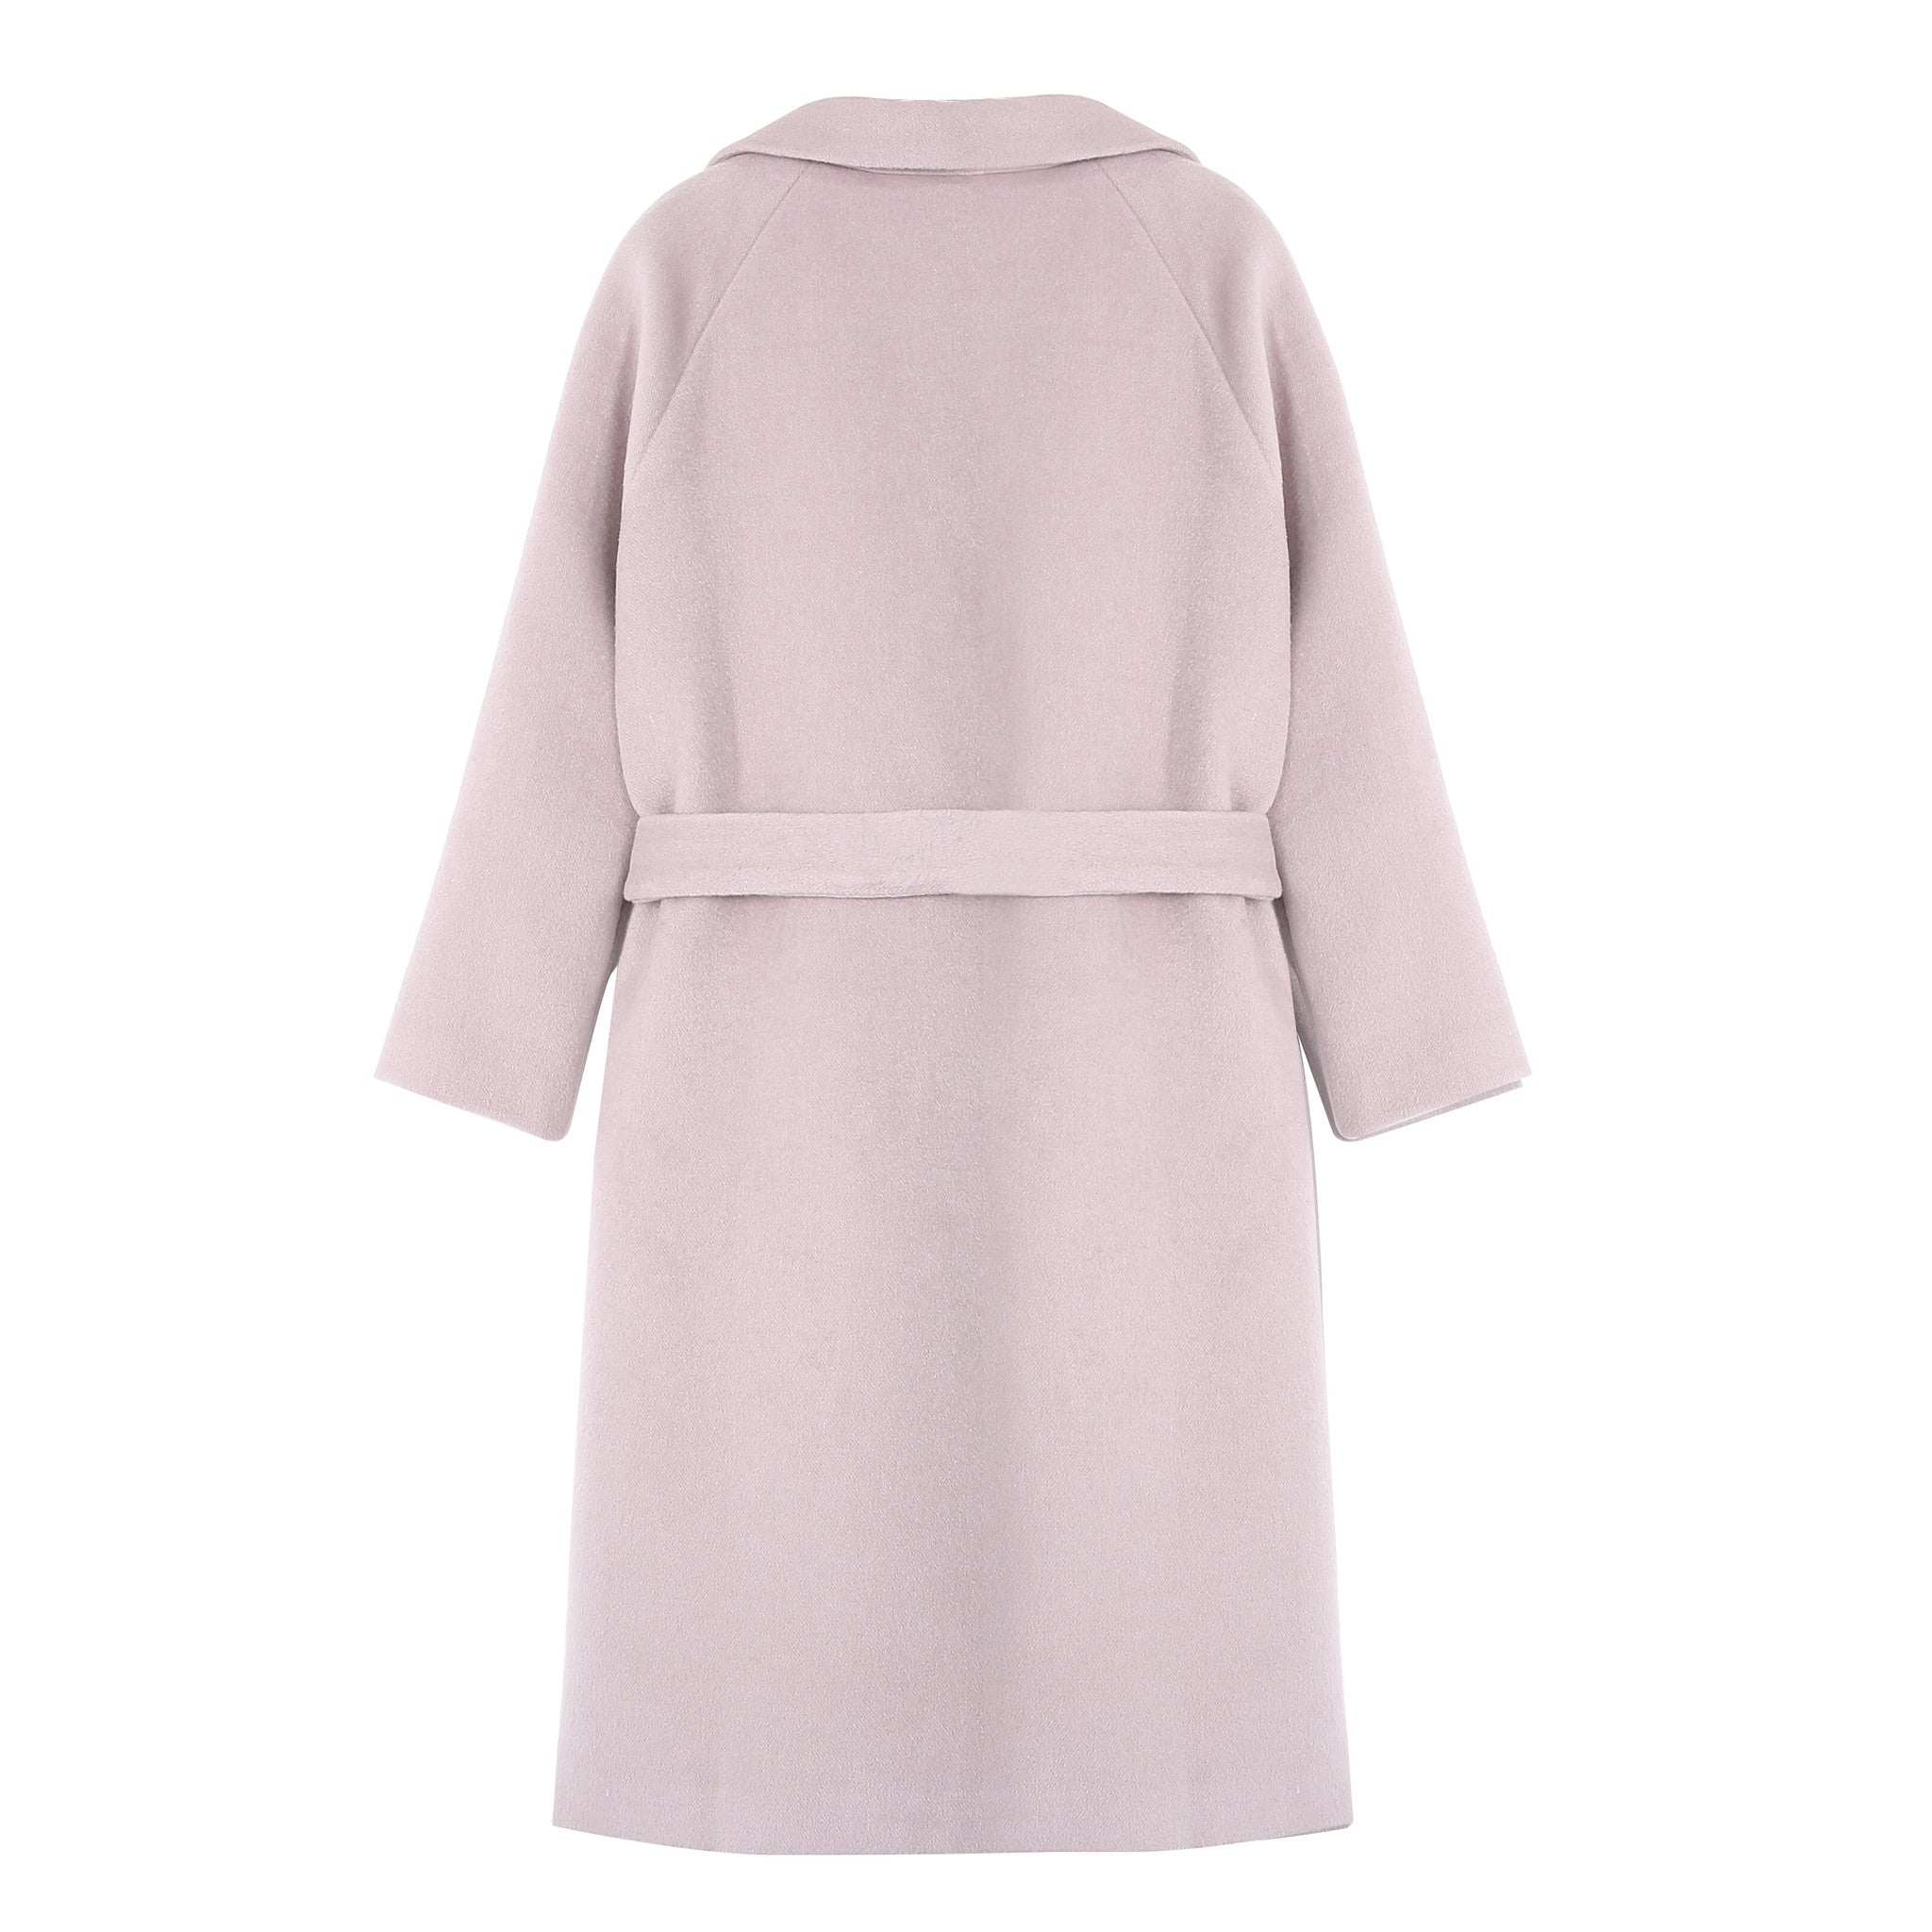 Robe Trench in Blush - Indigo